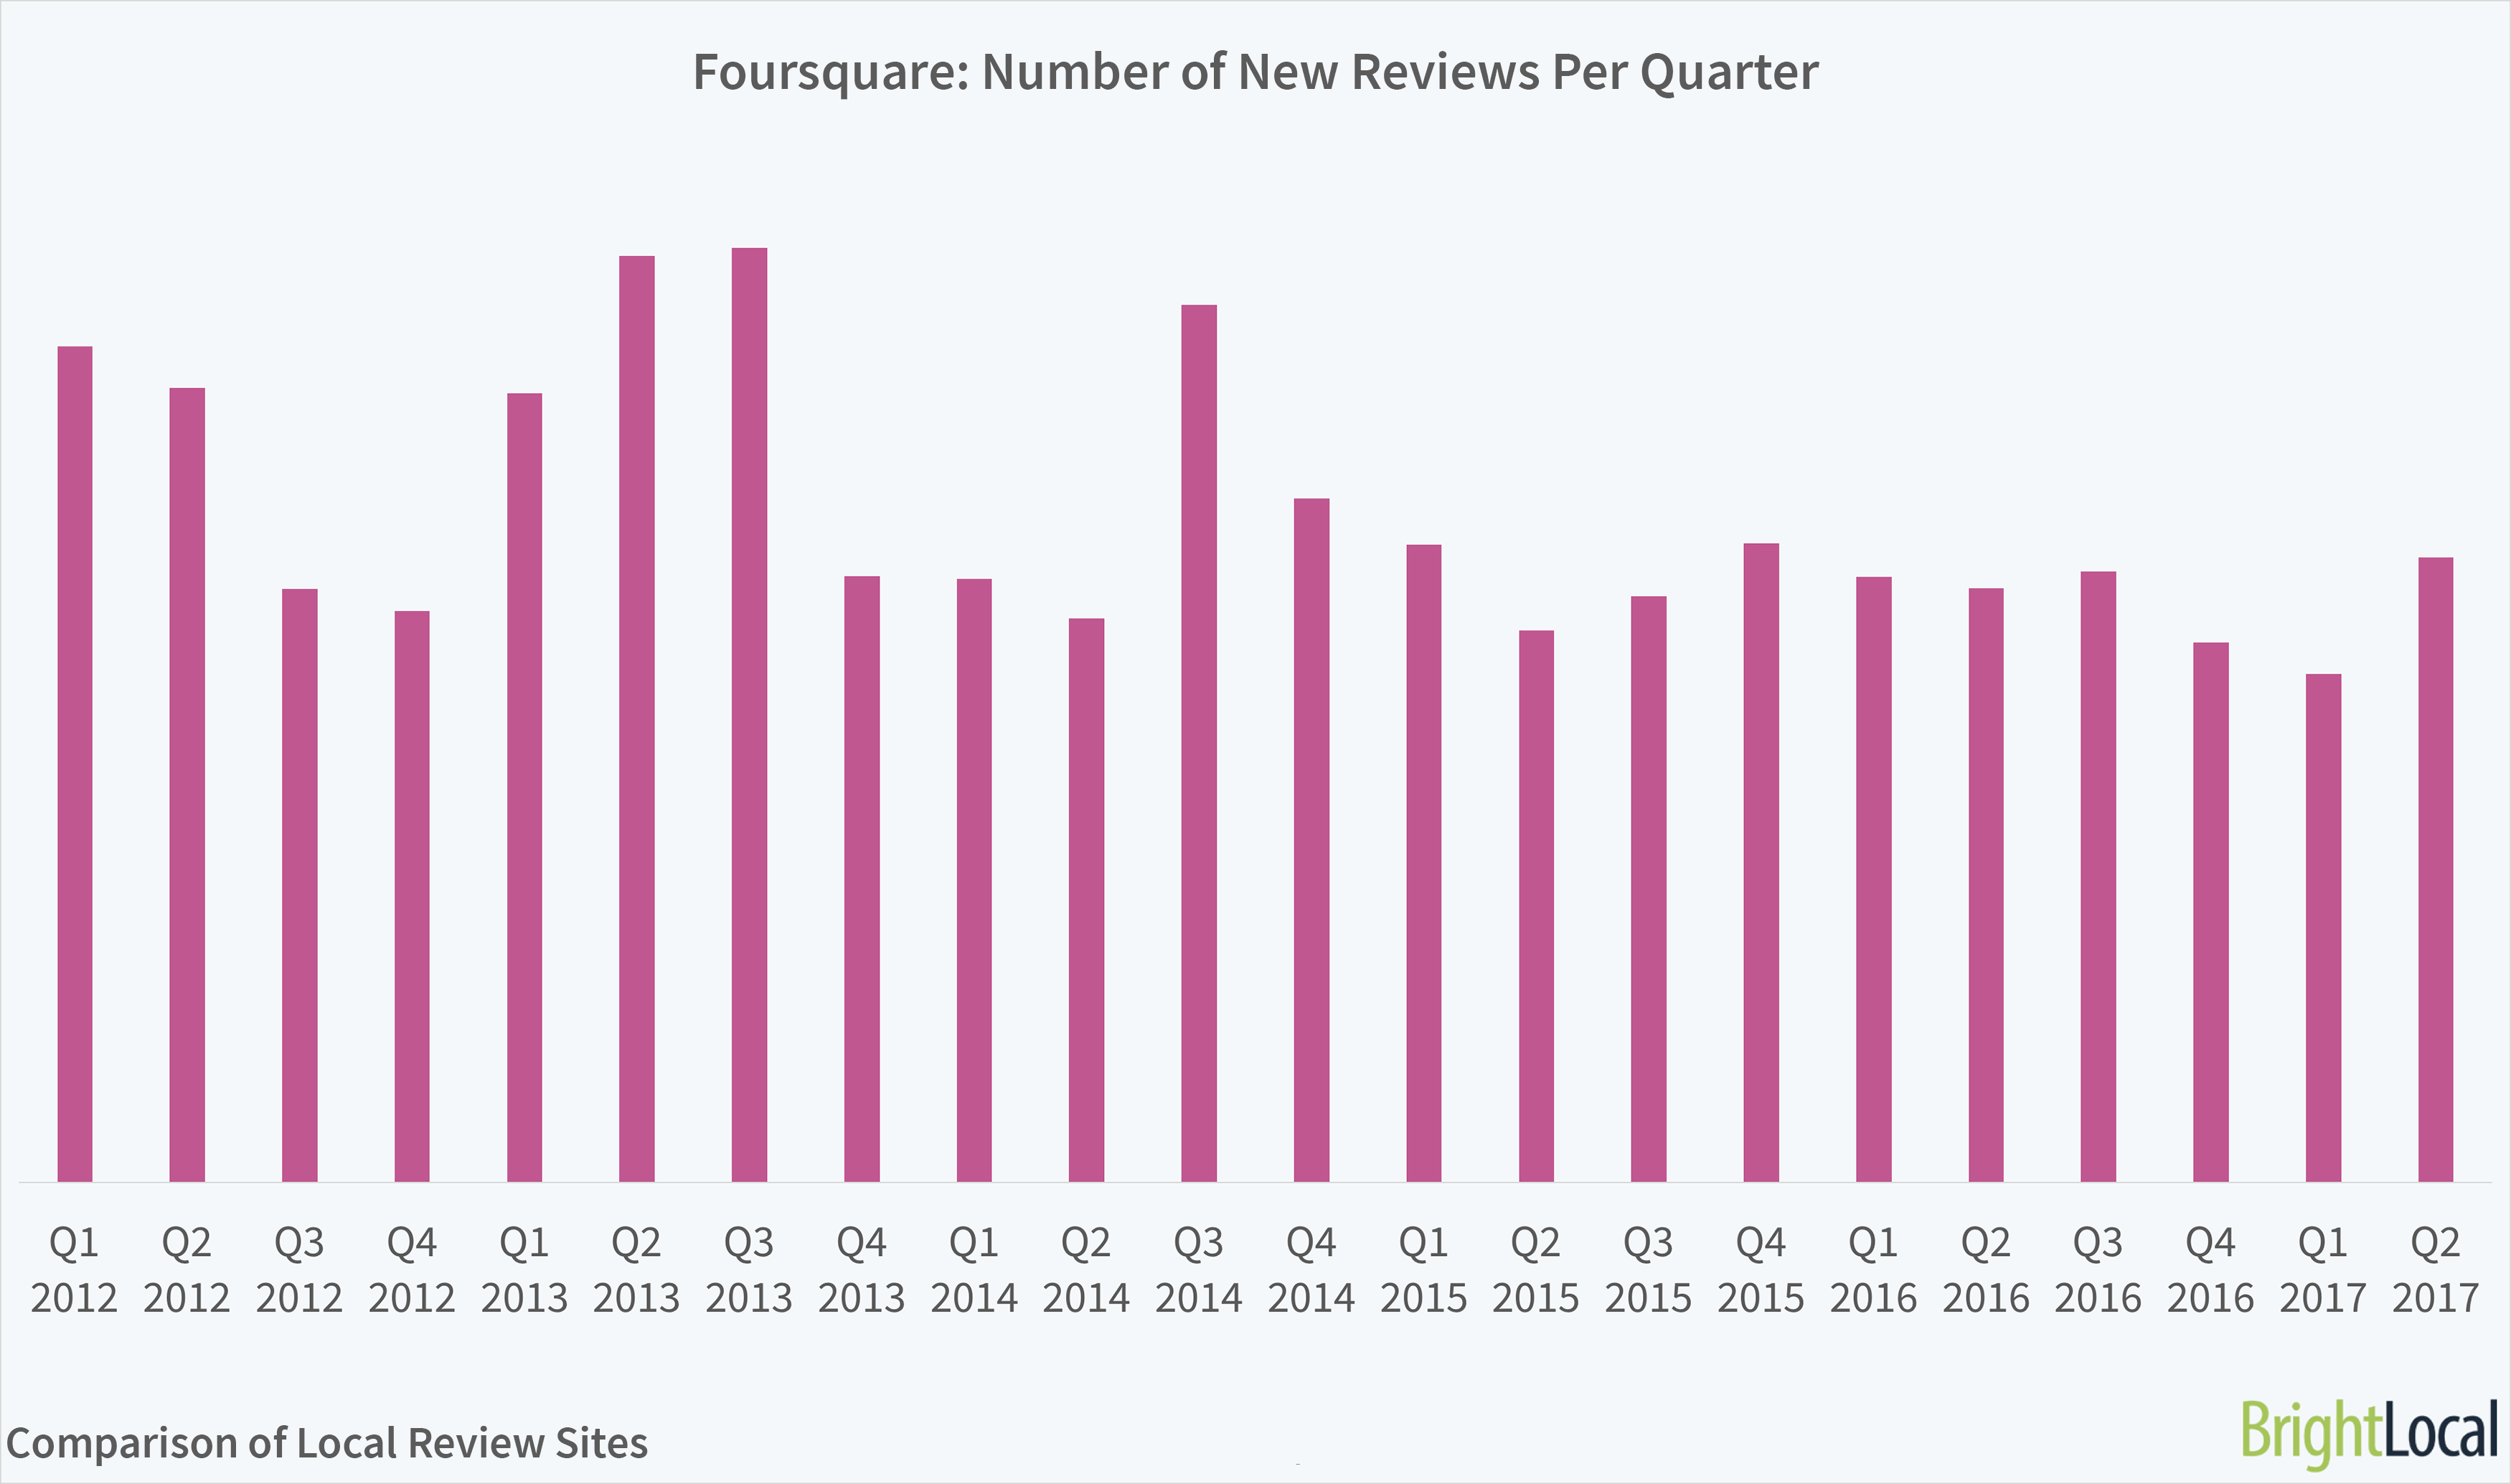 Foursquare Growth in Reviews